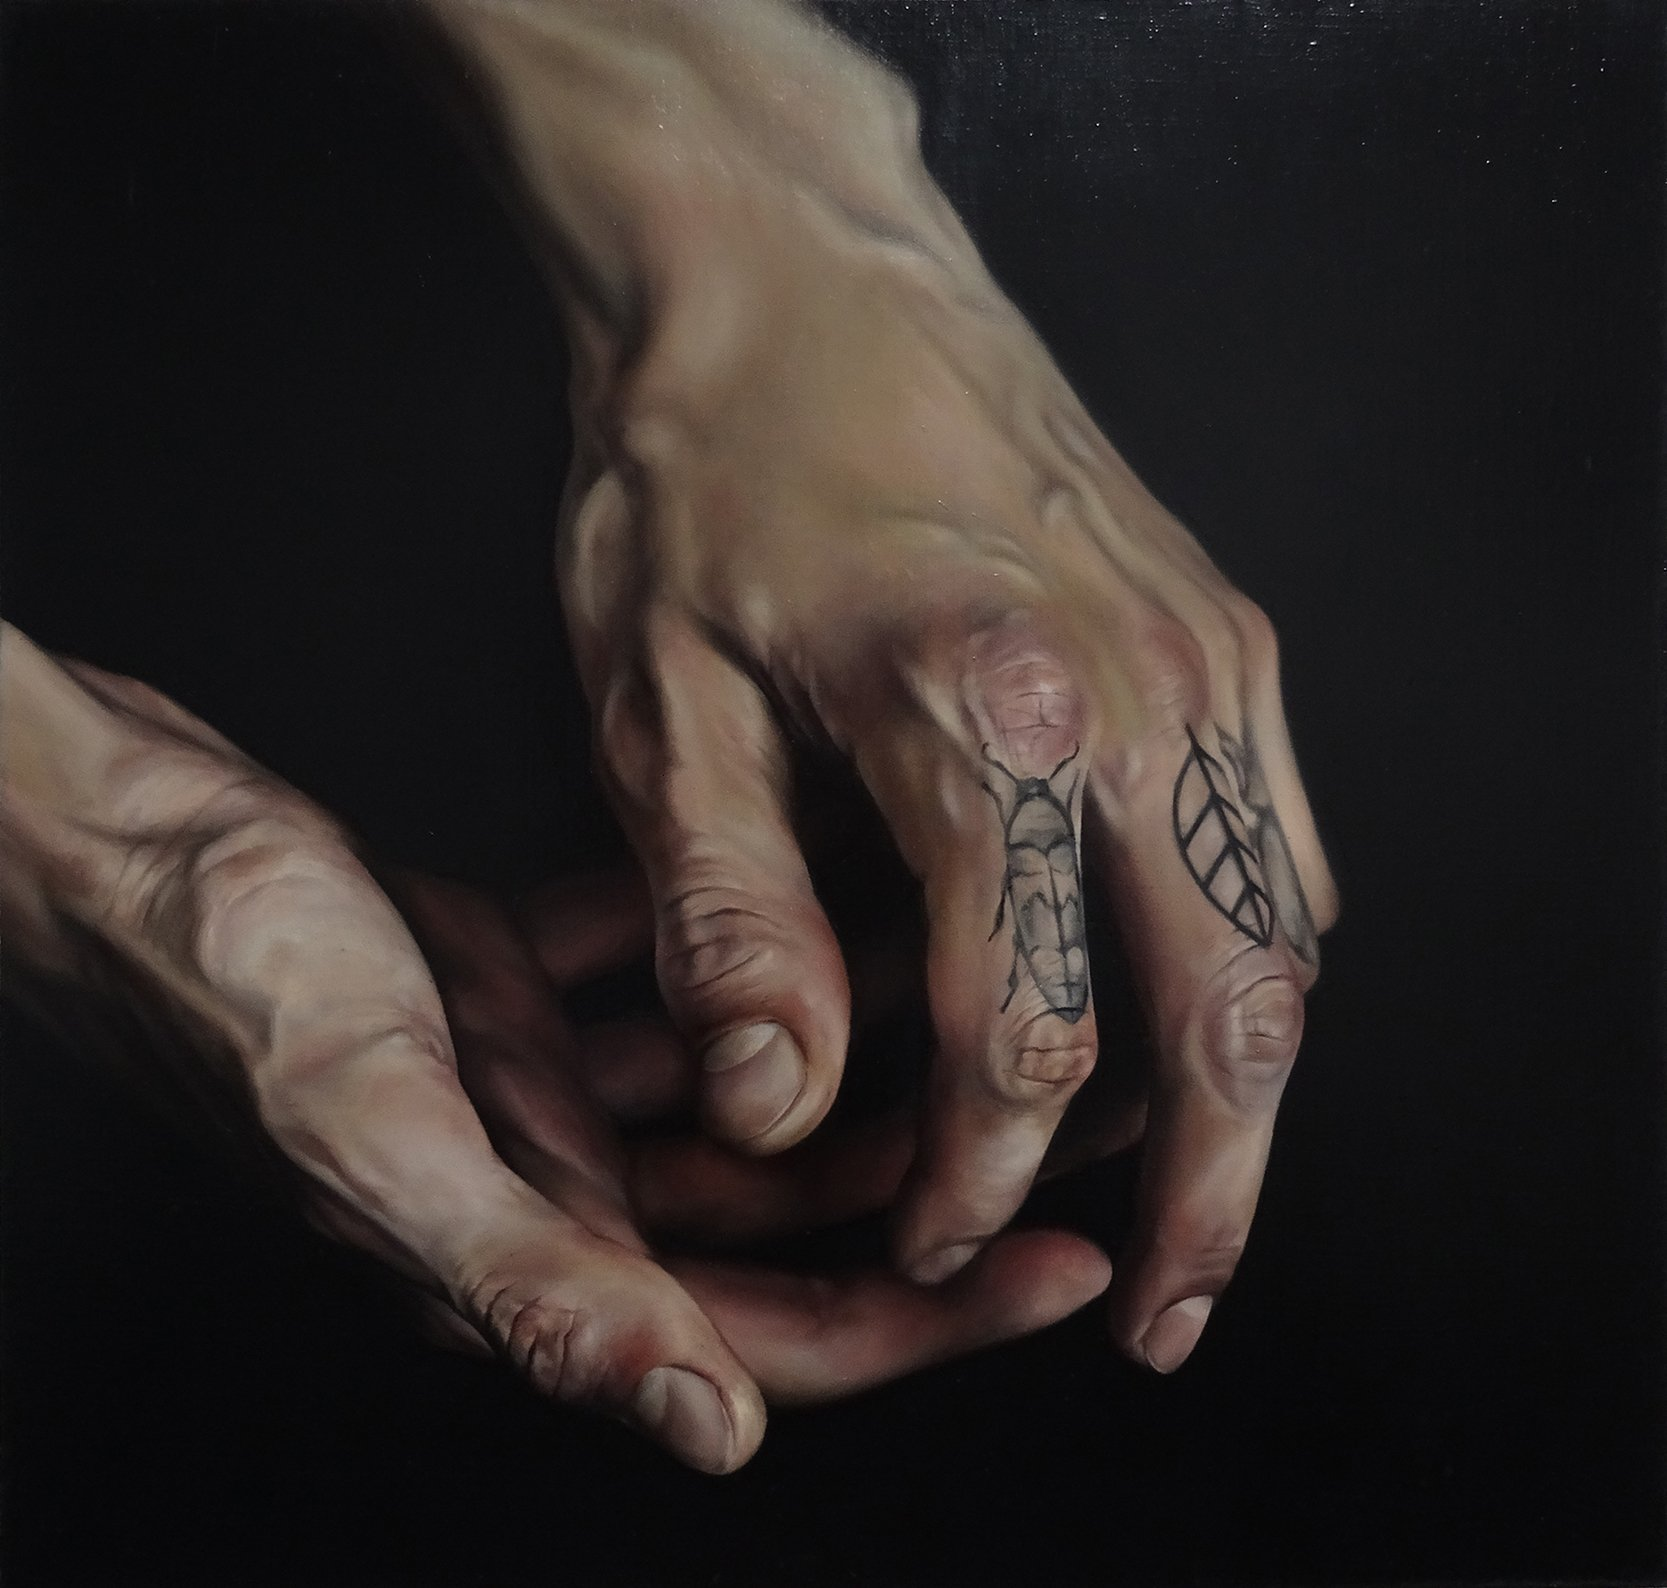 hyperrealist oil painting of tattooed hands by yanina viland